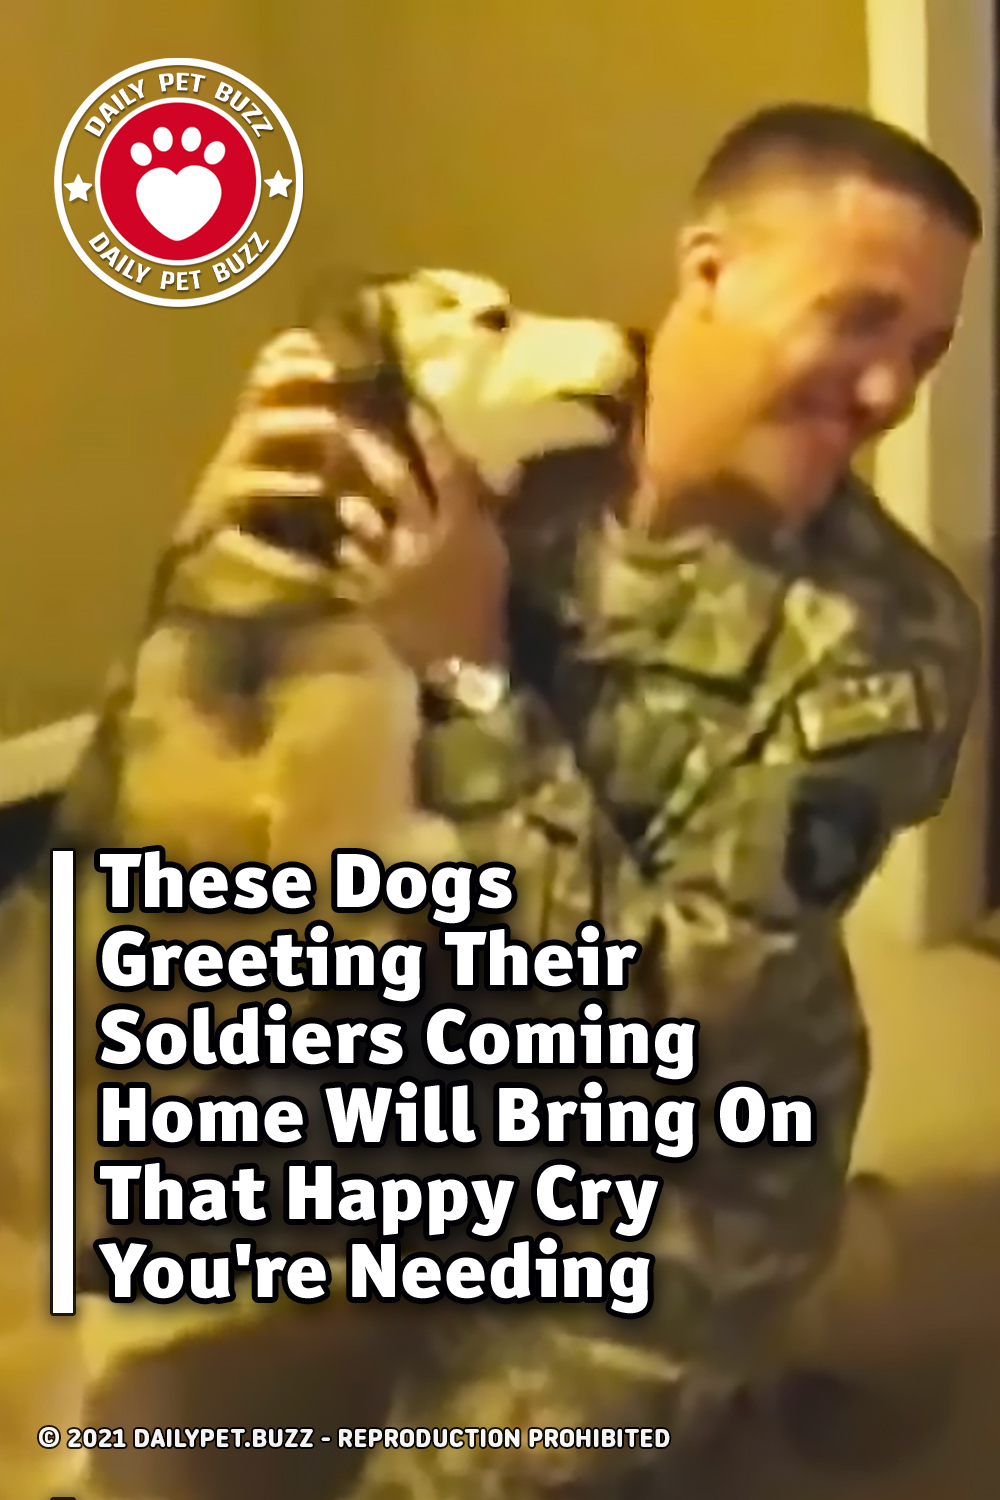 These Dogs Greeting Their Soldiers Coming Home Will Bring On That Happy Cry You\'re Needing